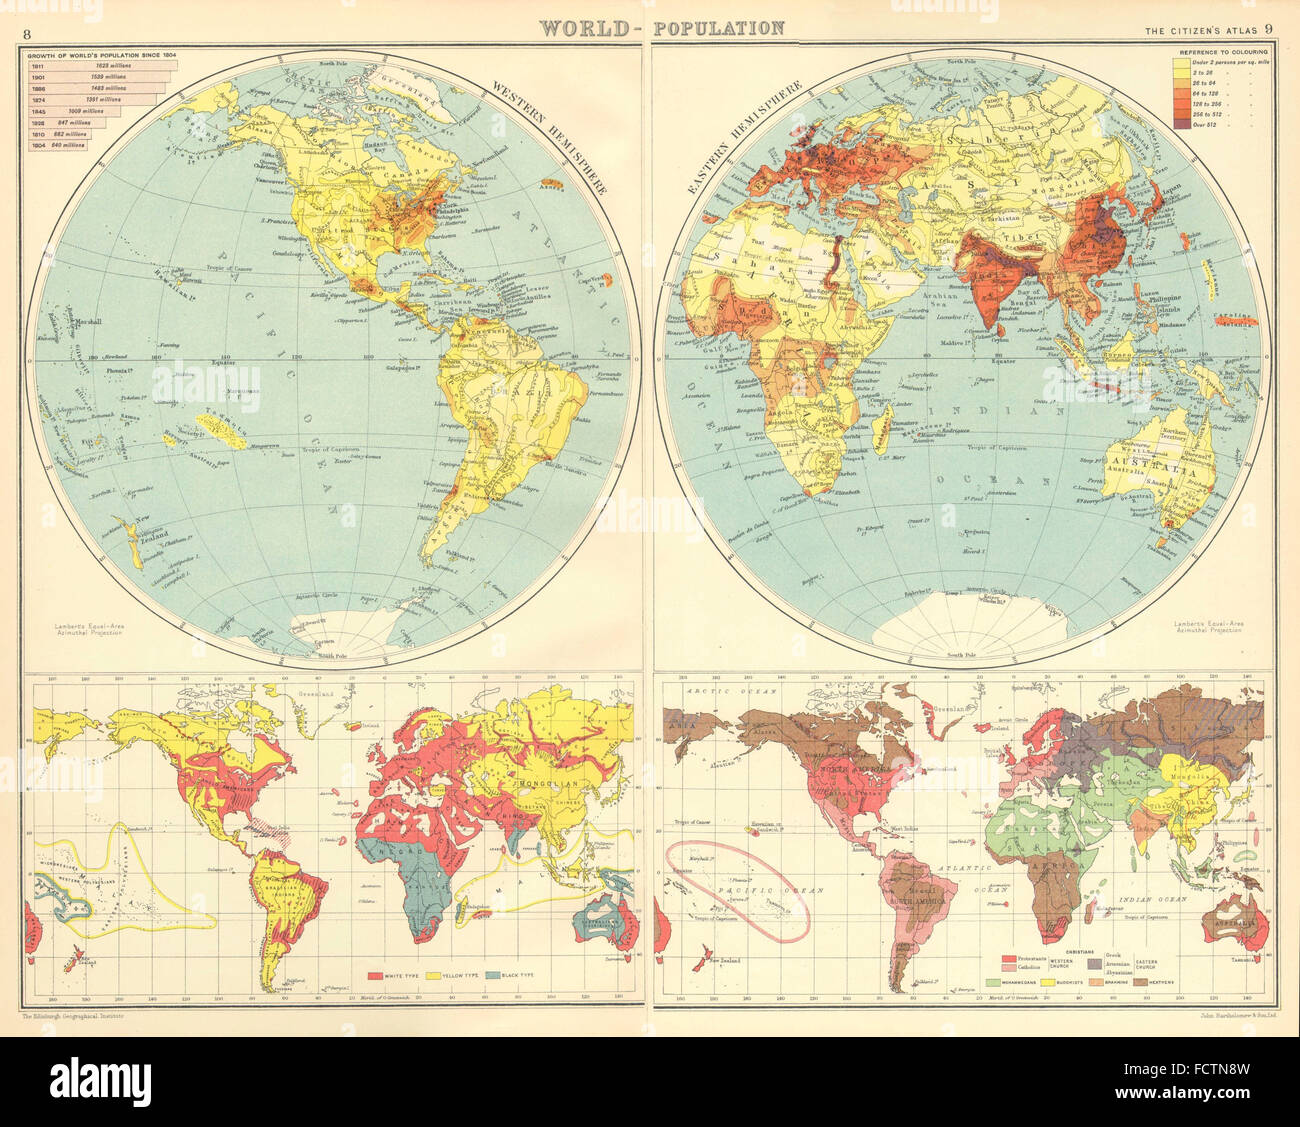 World Religions Map Stock Photos & World Religions Map Stock Images ...